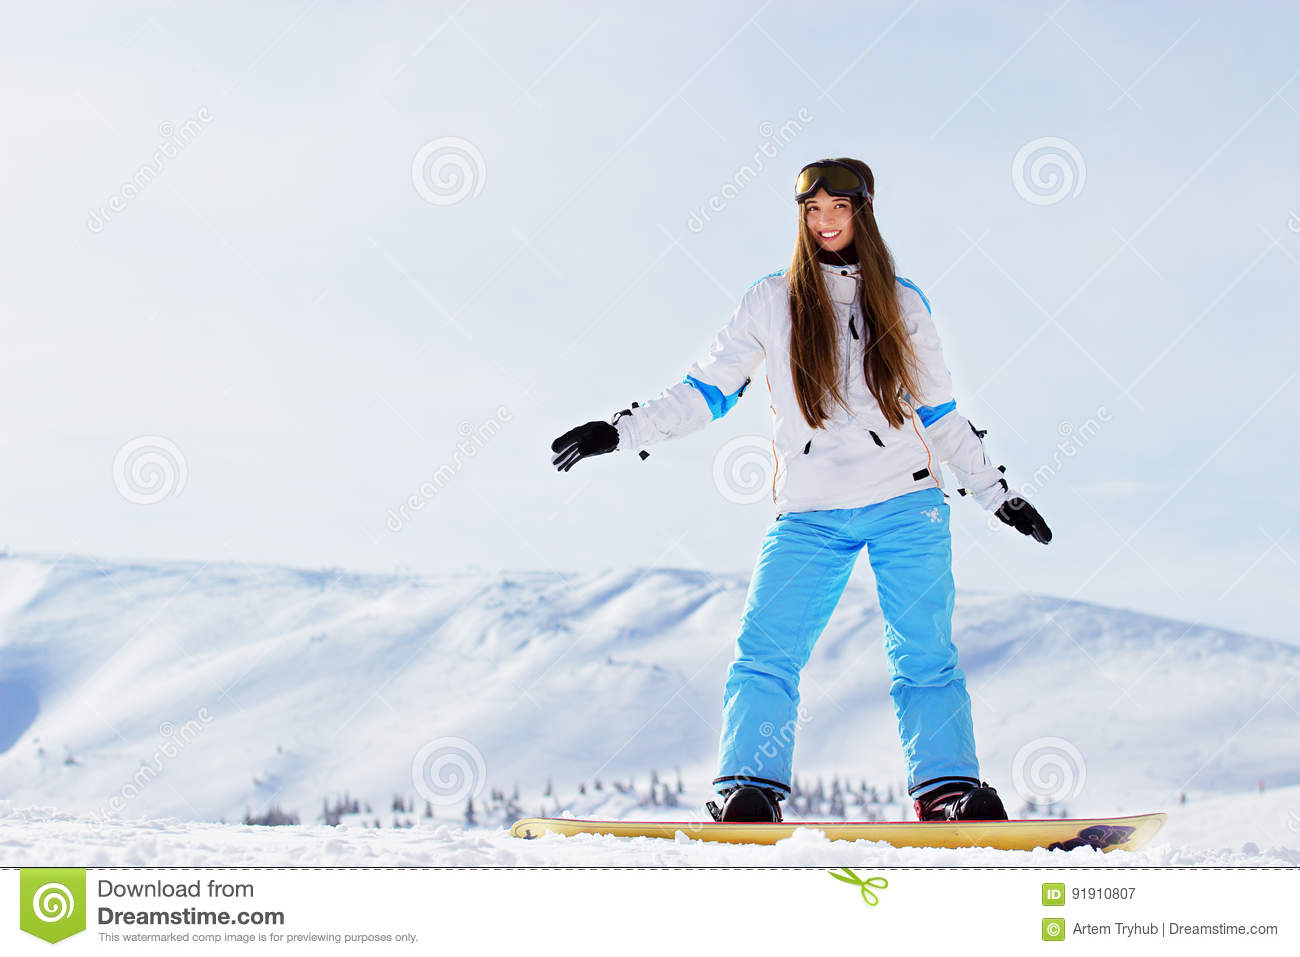 3bbbc46cfa Beautiful woman with snowboard in the mountains. Winter sport activities.